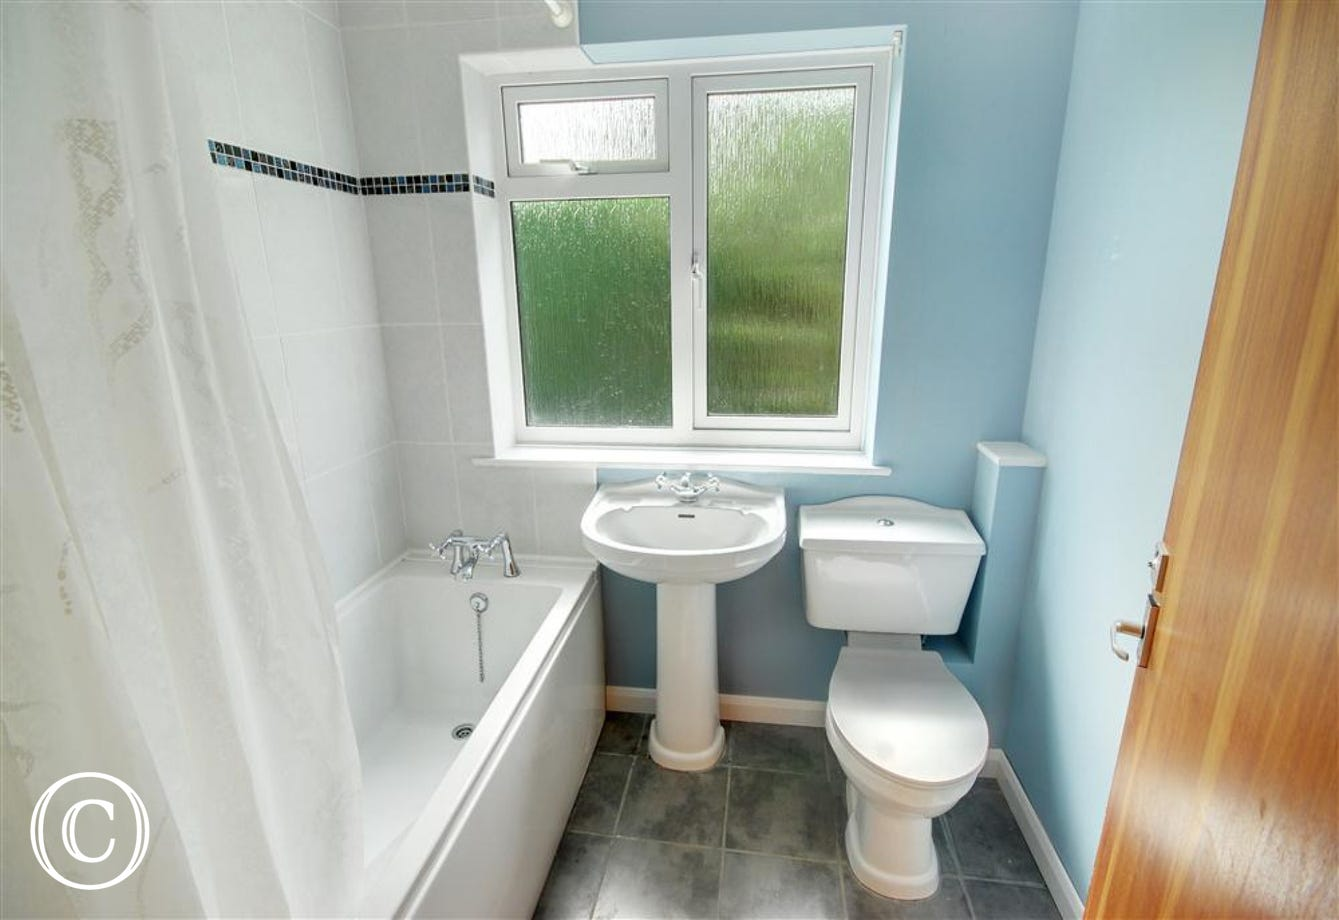 Newly fitted bathroom with a shower over the bath